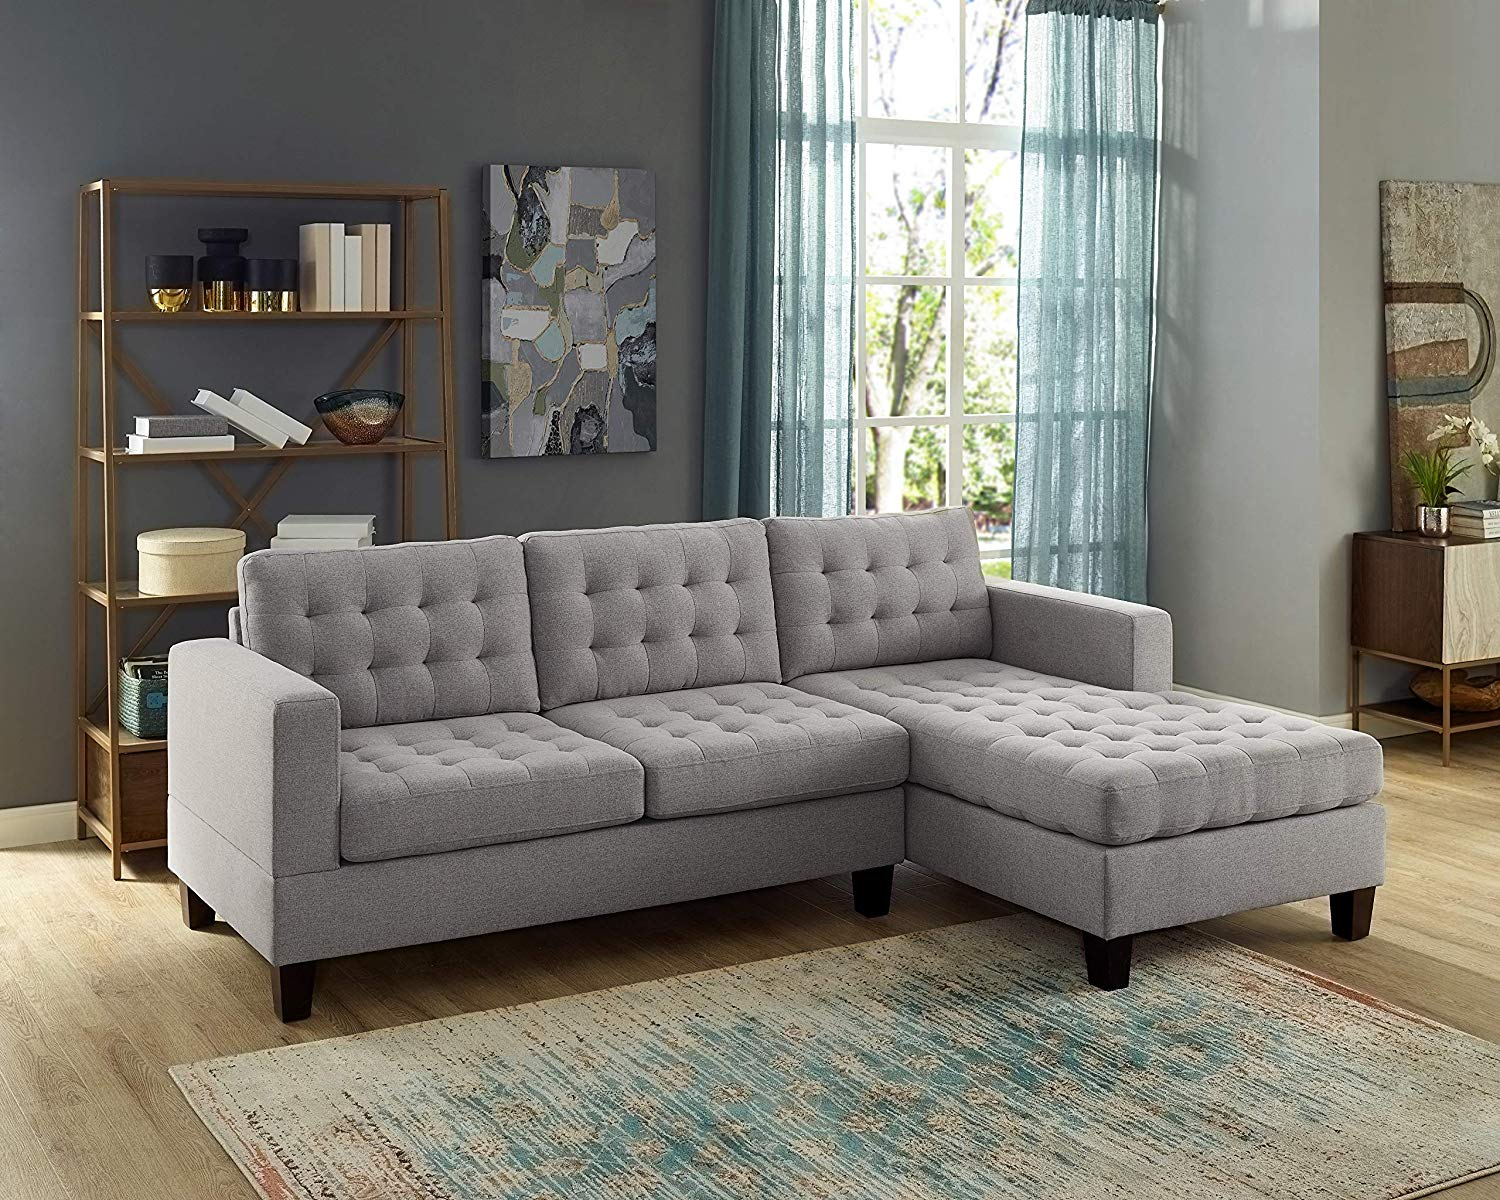 Metro Grey Contemporary Sectional Sofa in Light Grey Color Fabric - Reversible